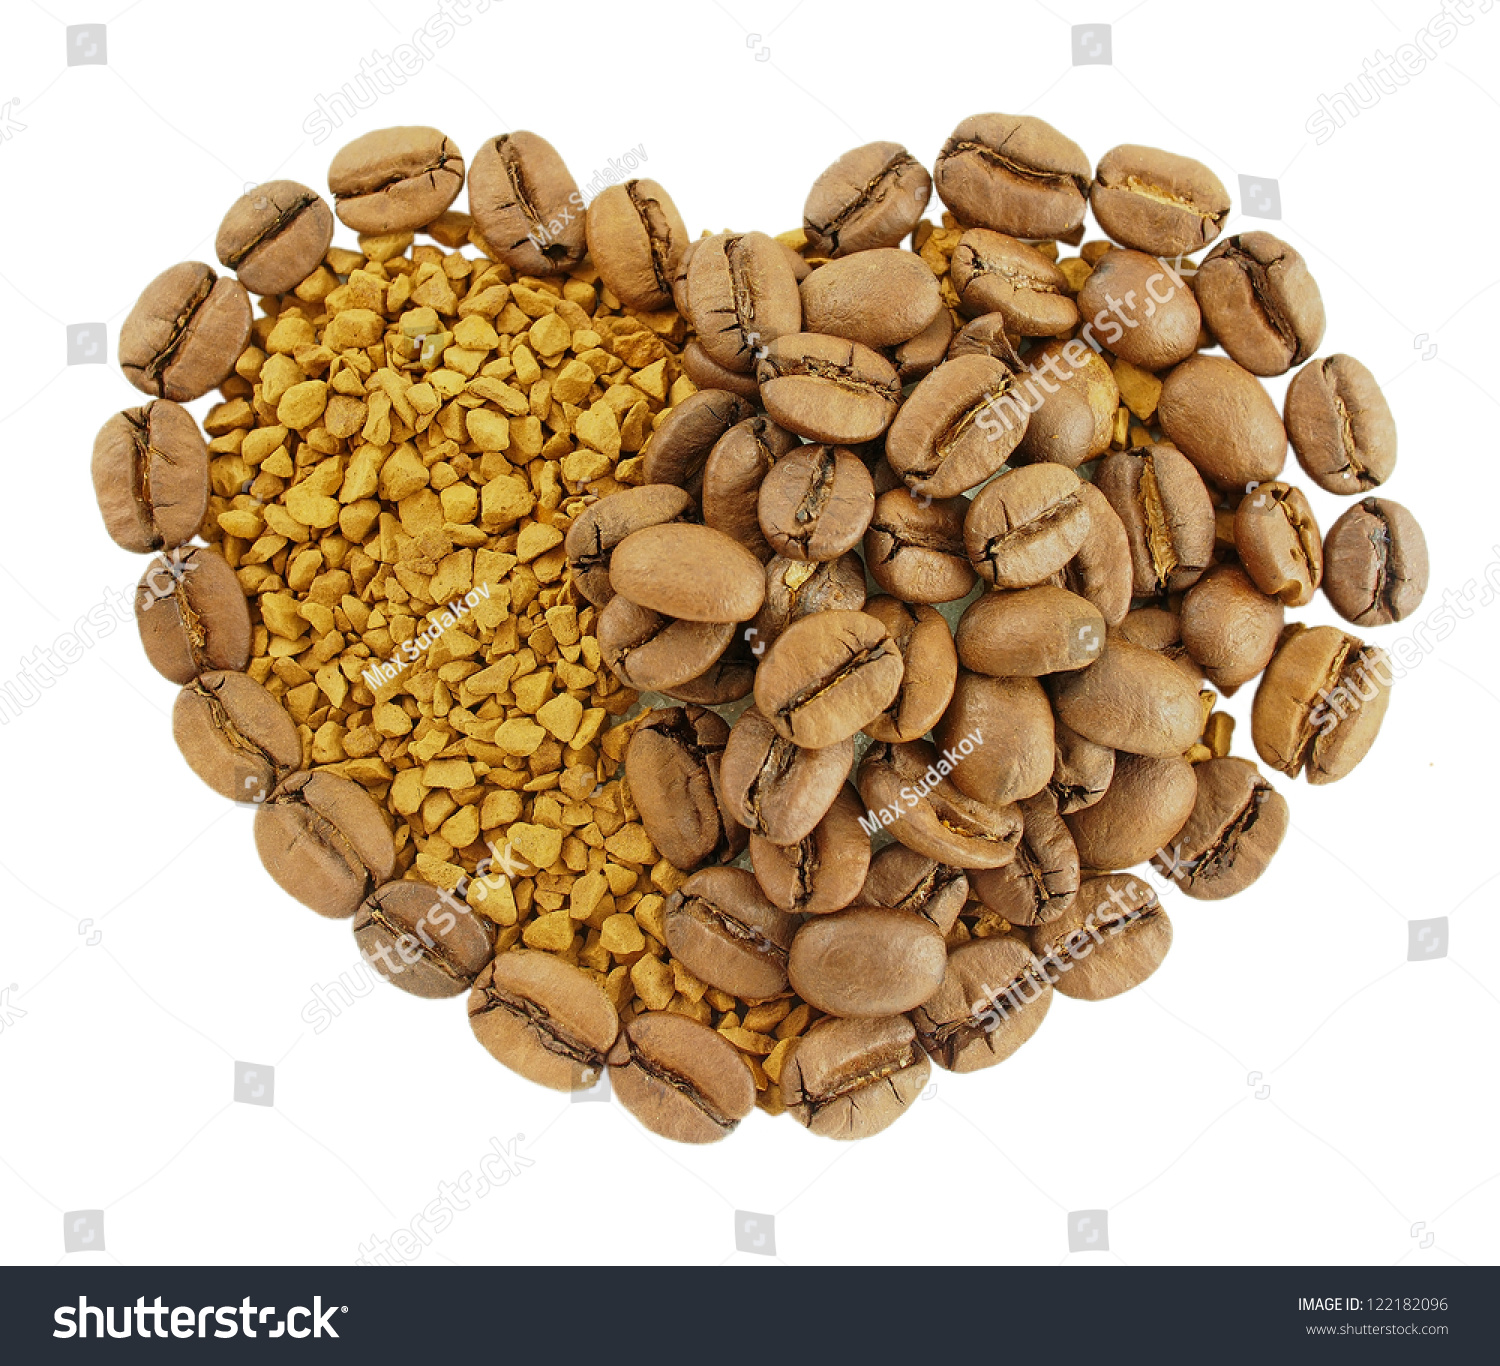 coffee heart granules instant coffee coffee stock photo 122182096 shutterstock. Black Bedroom Furniture Sets. Home Design Ideas